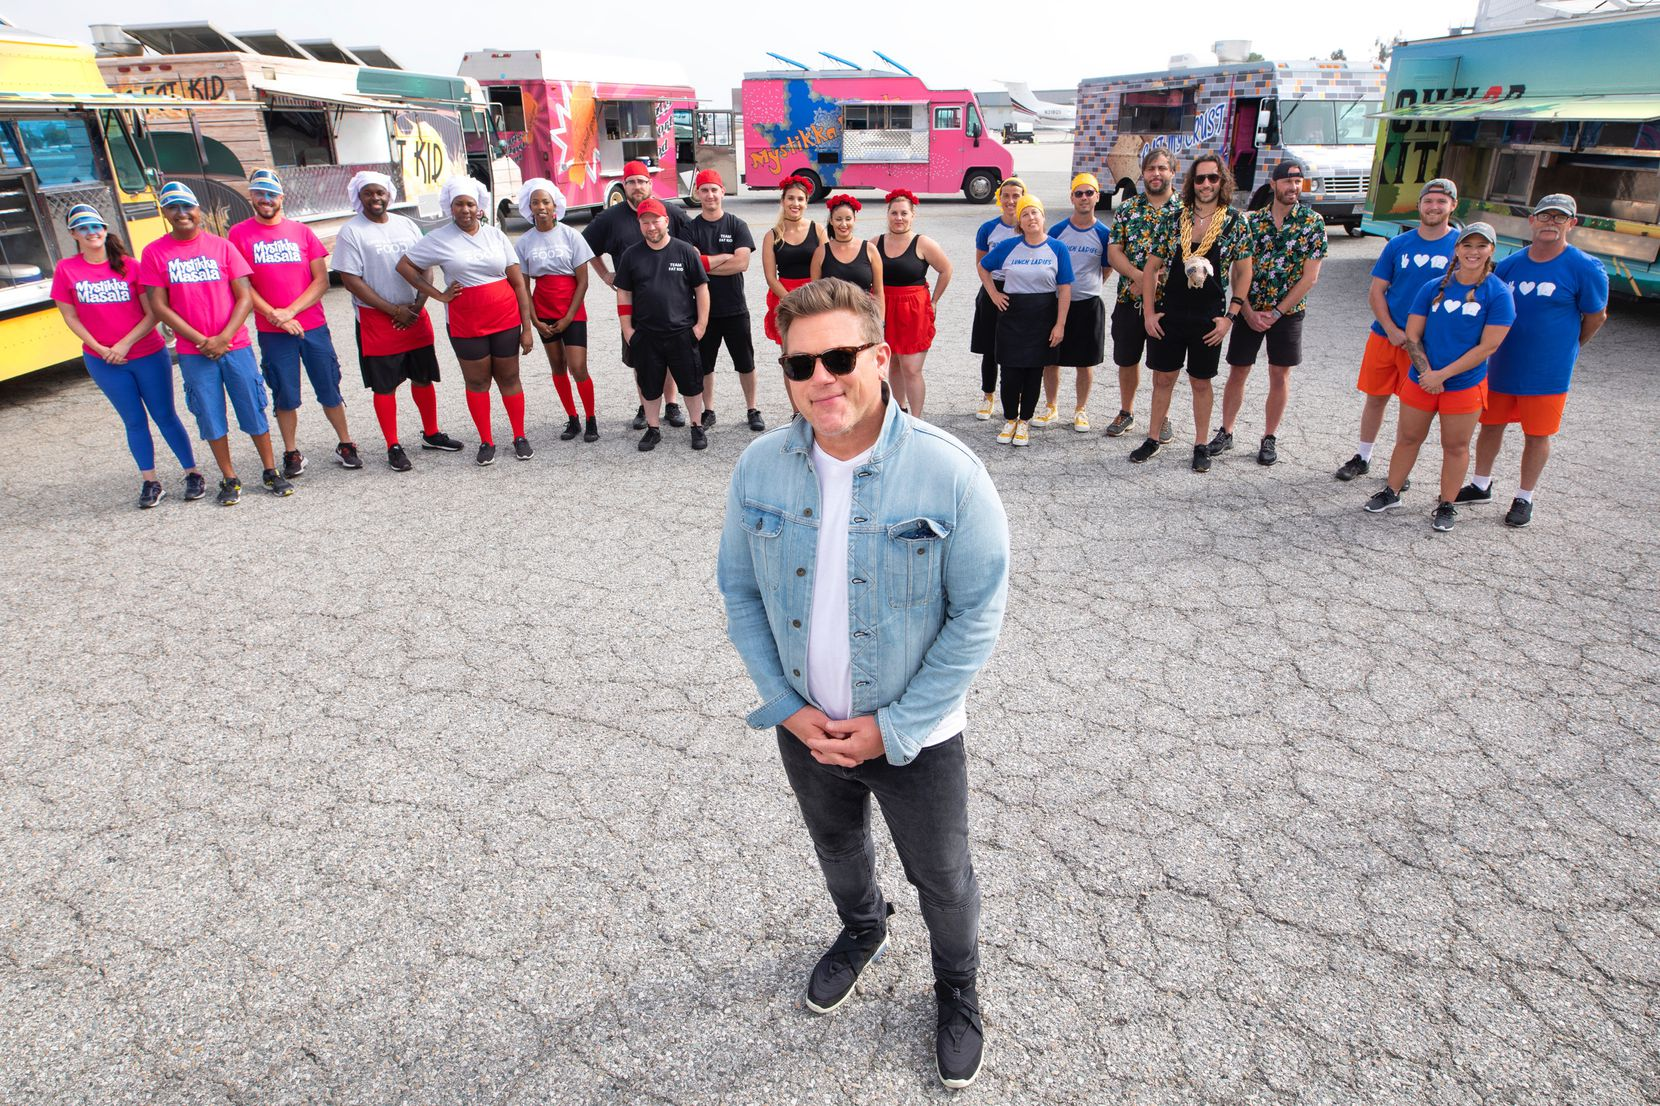 Tyler Florence hosts The Great Food Truck Race on the Food Network.